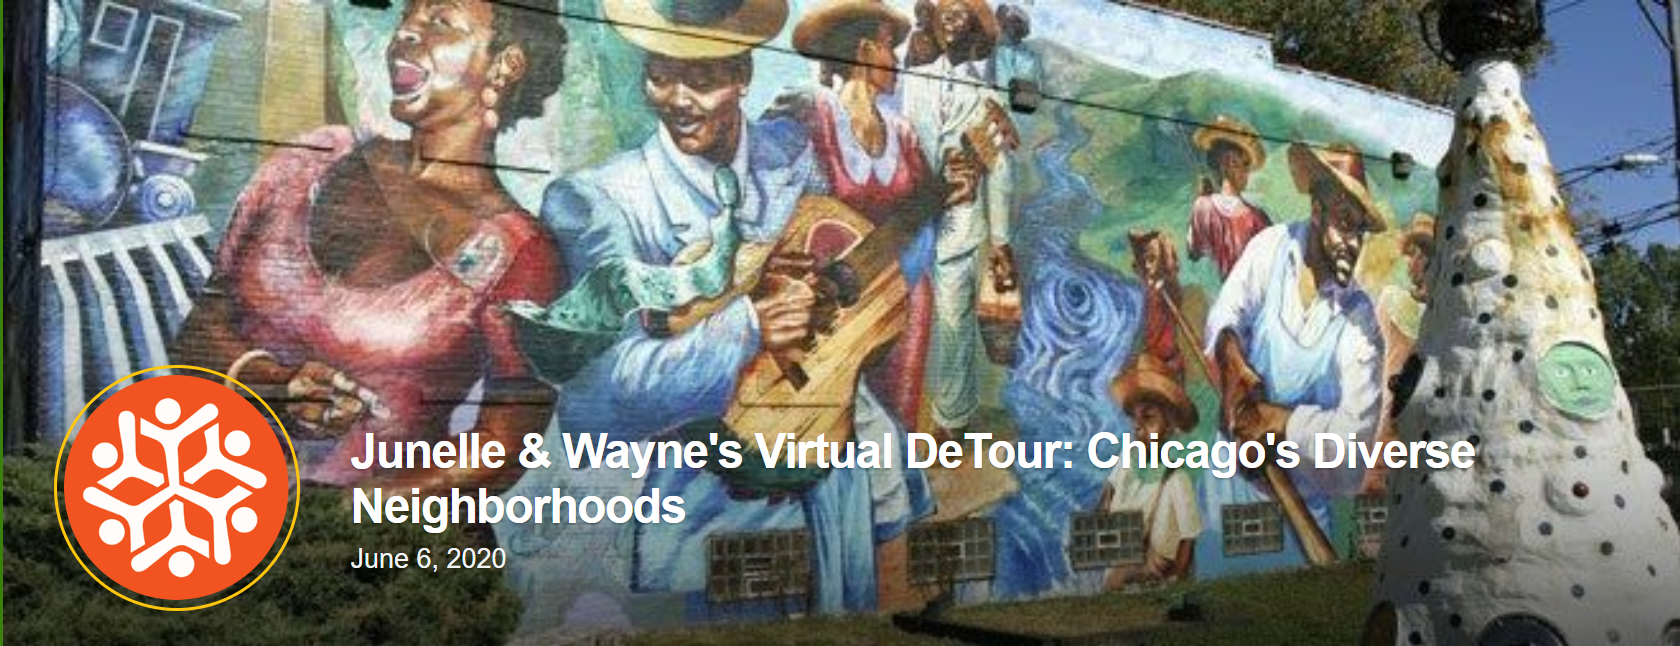 Image showing a mural that is a stop on Snow City Arts' virtual art tour in Chicago's neighborhoods.